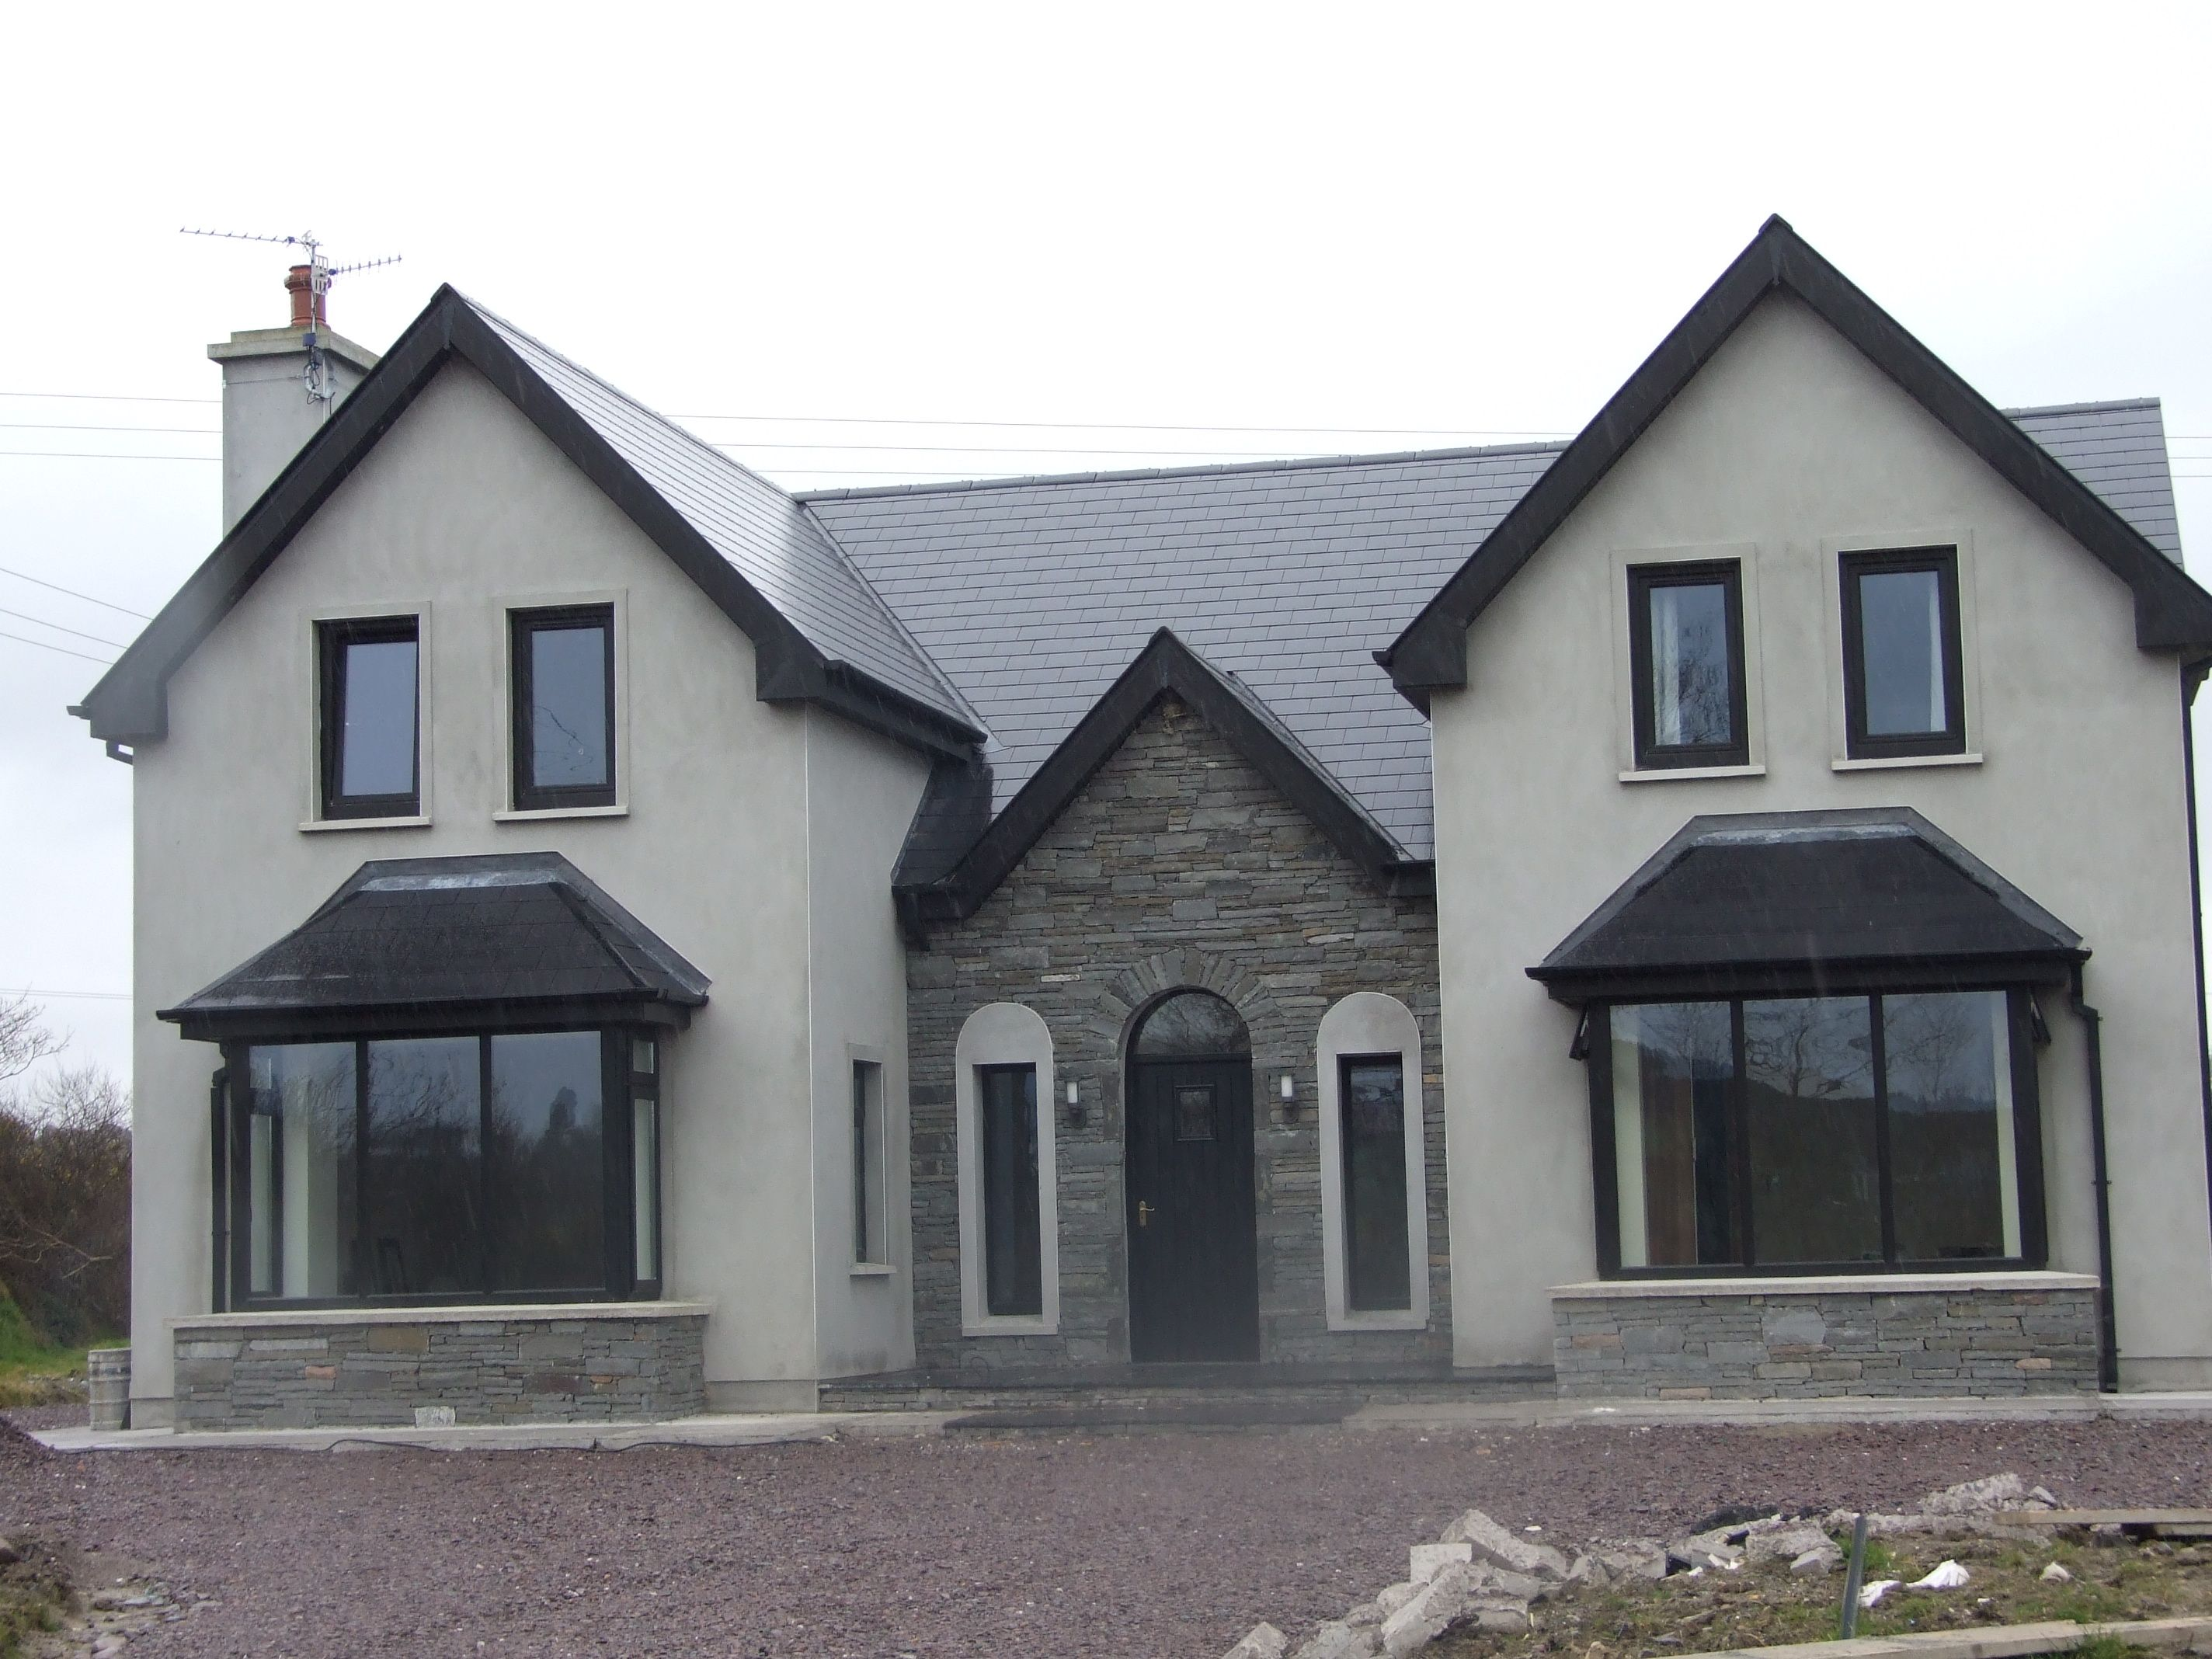 Almost finished new storey and a half residence in kerry ireland